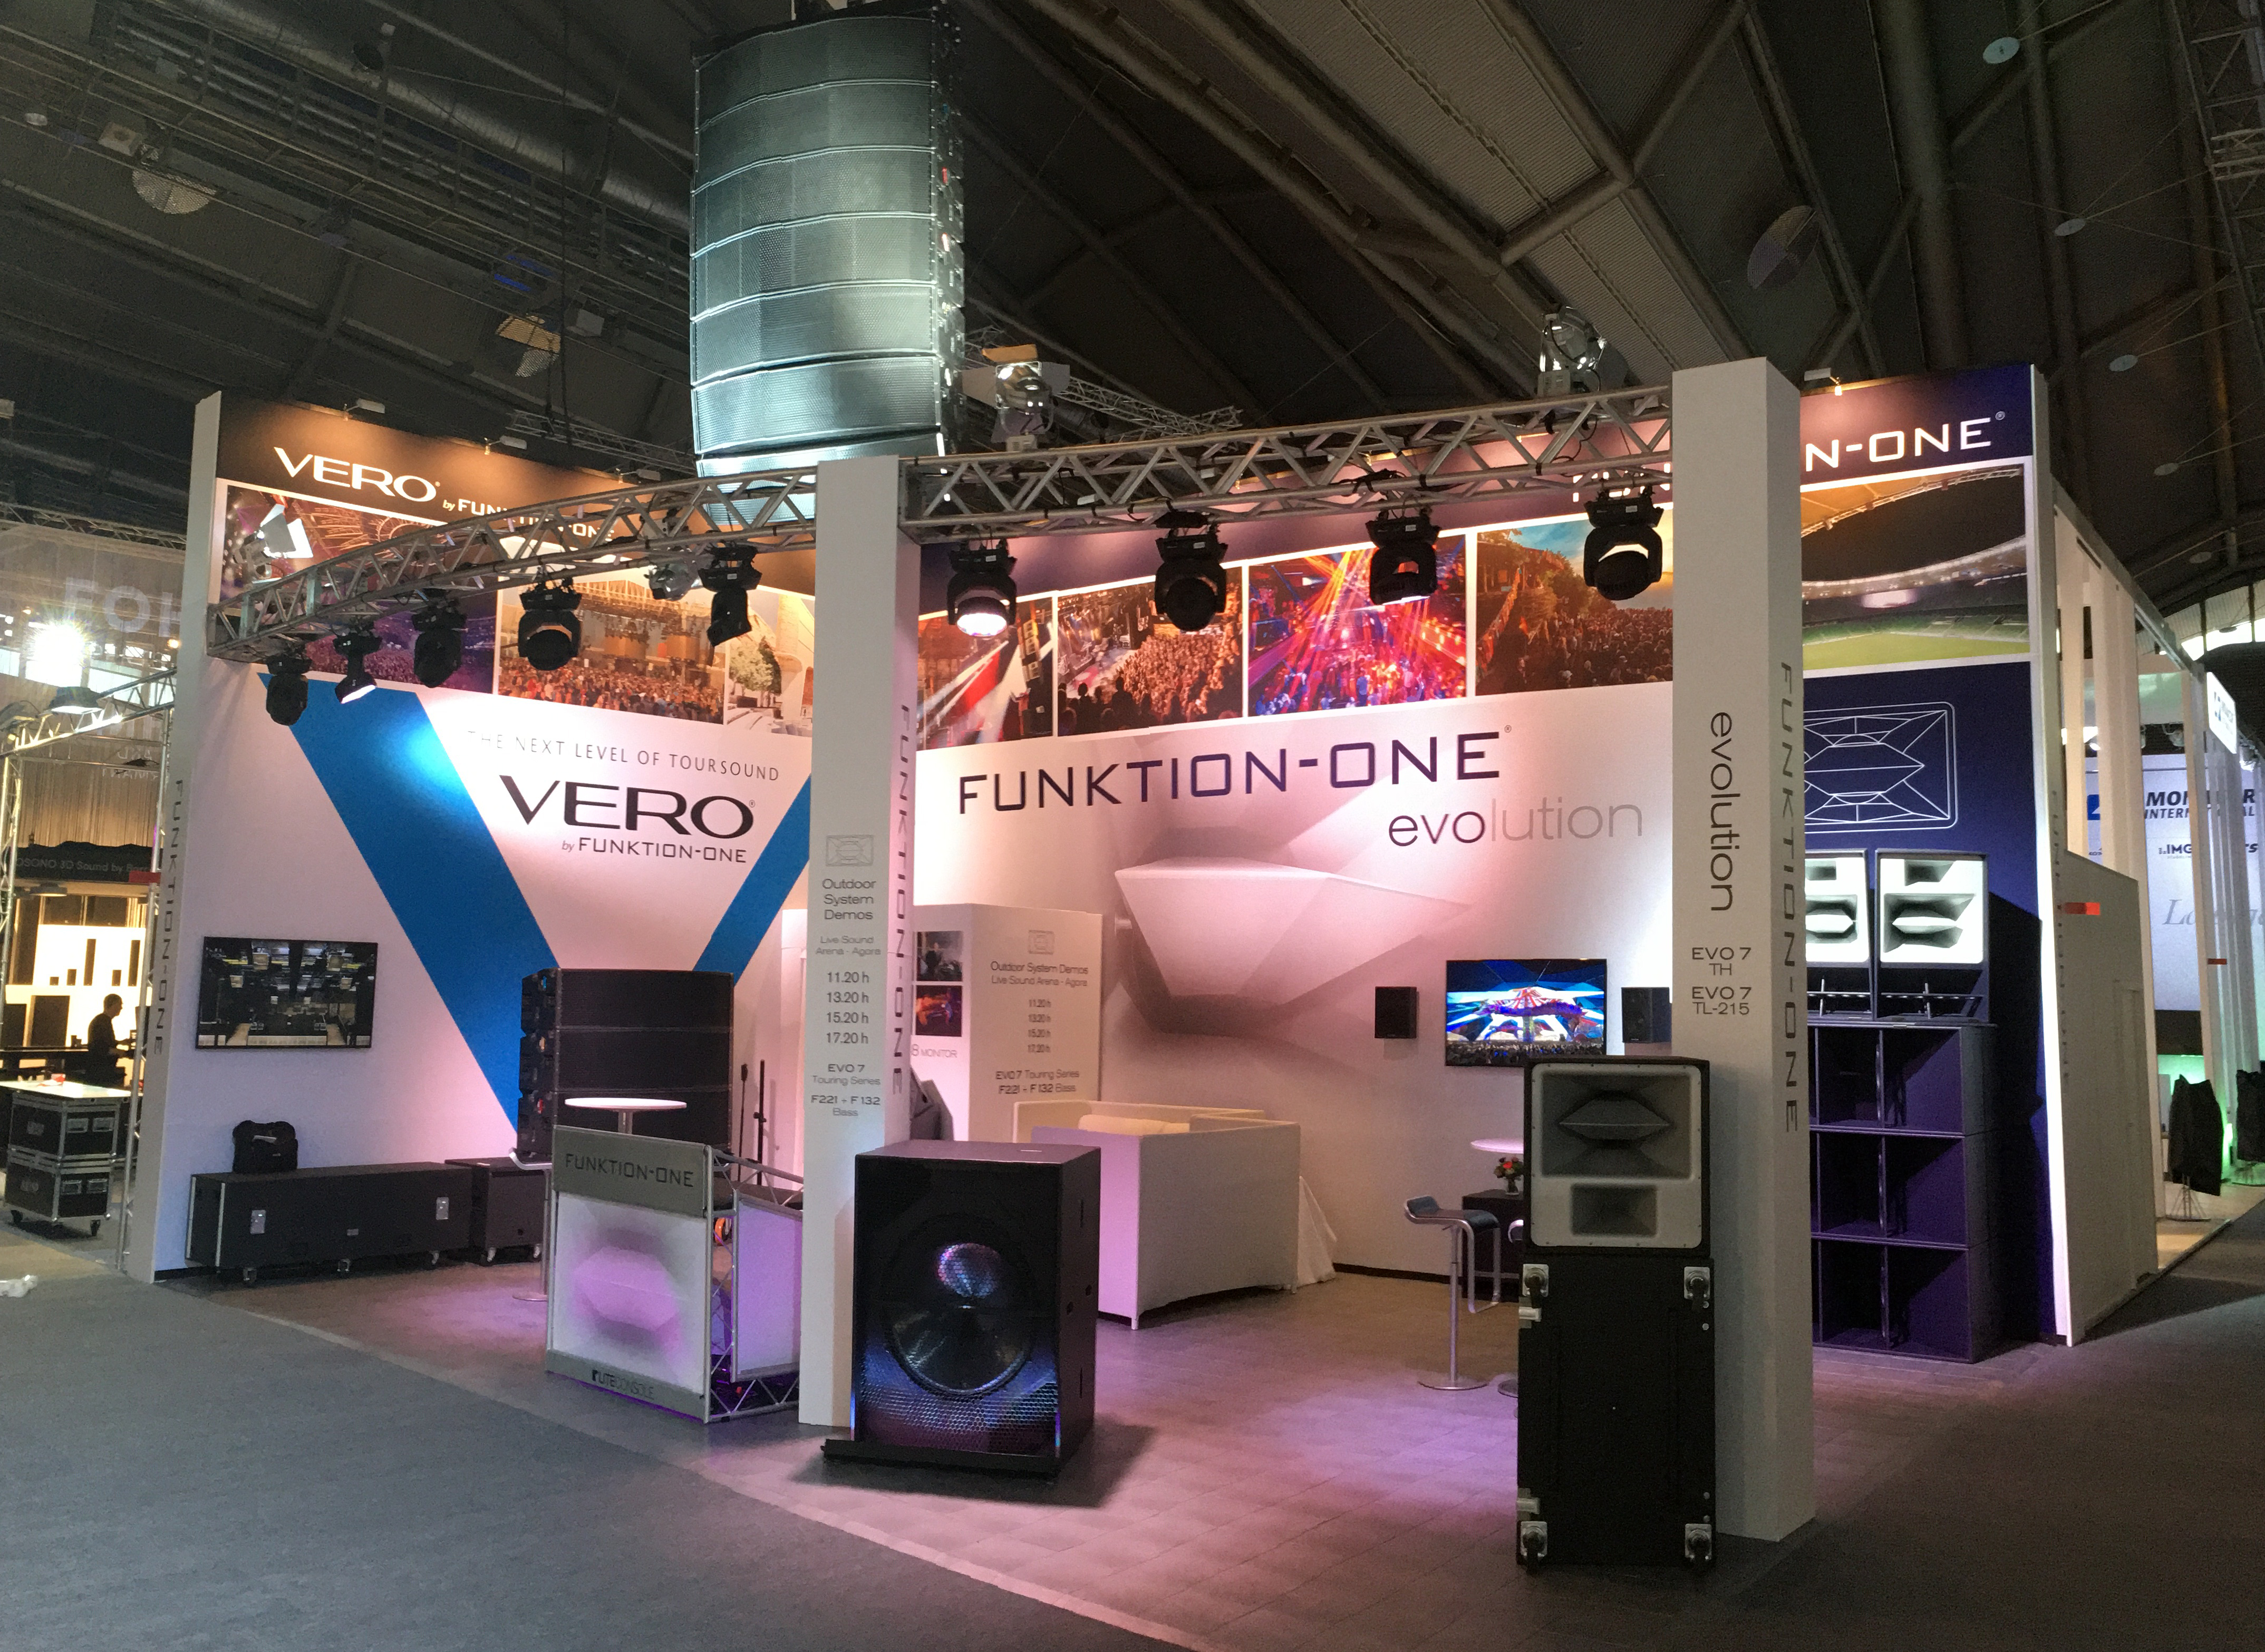 Funktion-One Trade show image